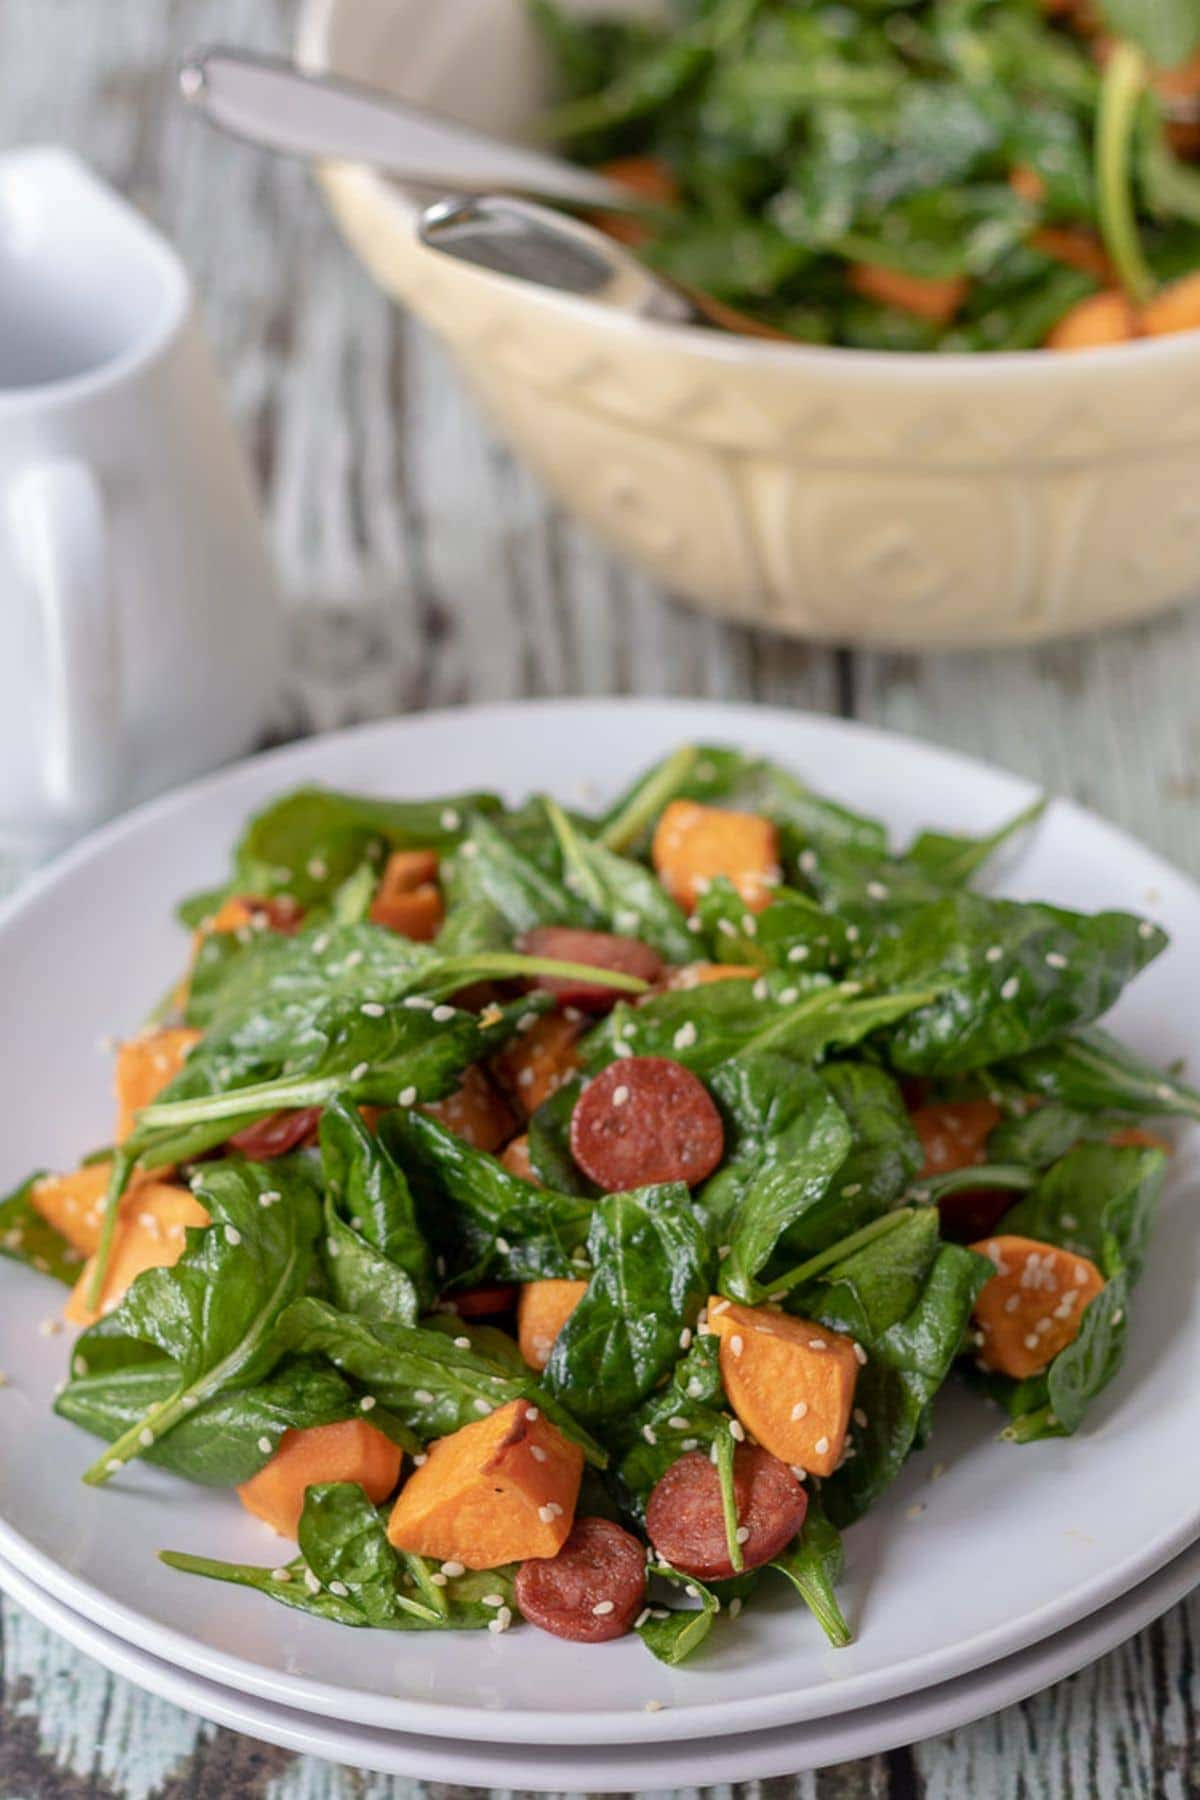 A plate of chorizo and sweet potato salad ready to eat sitting in front of a serving bowl.